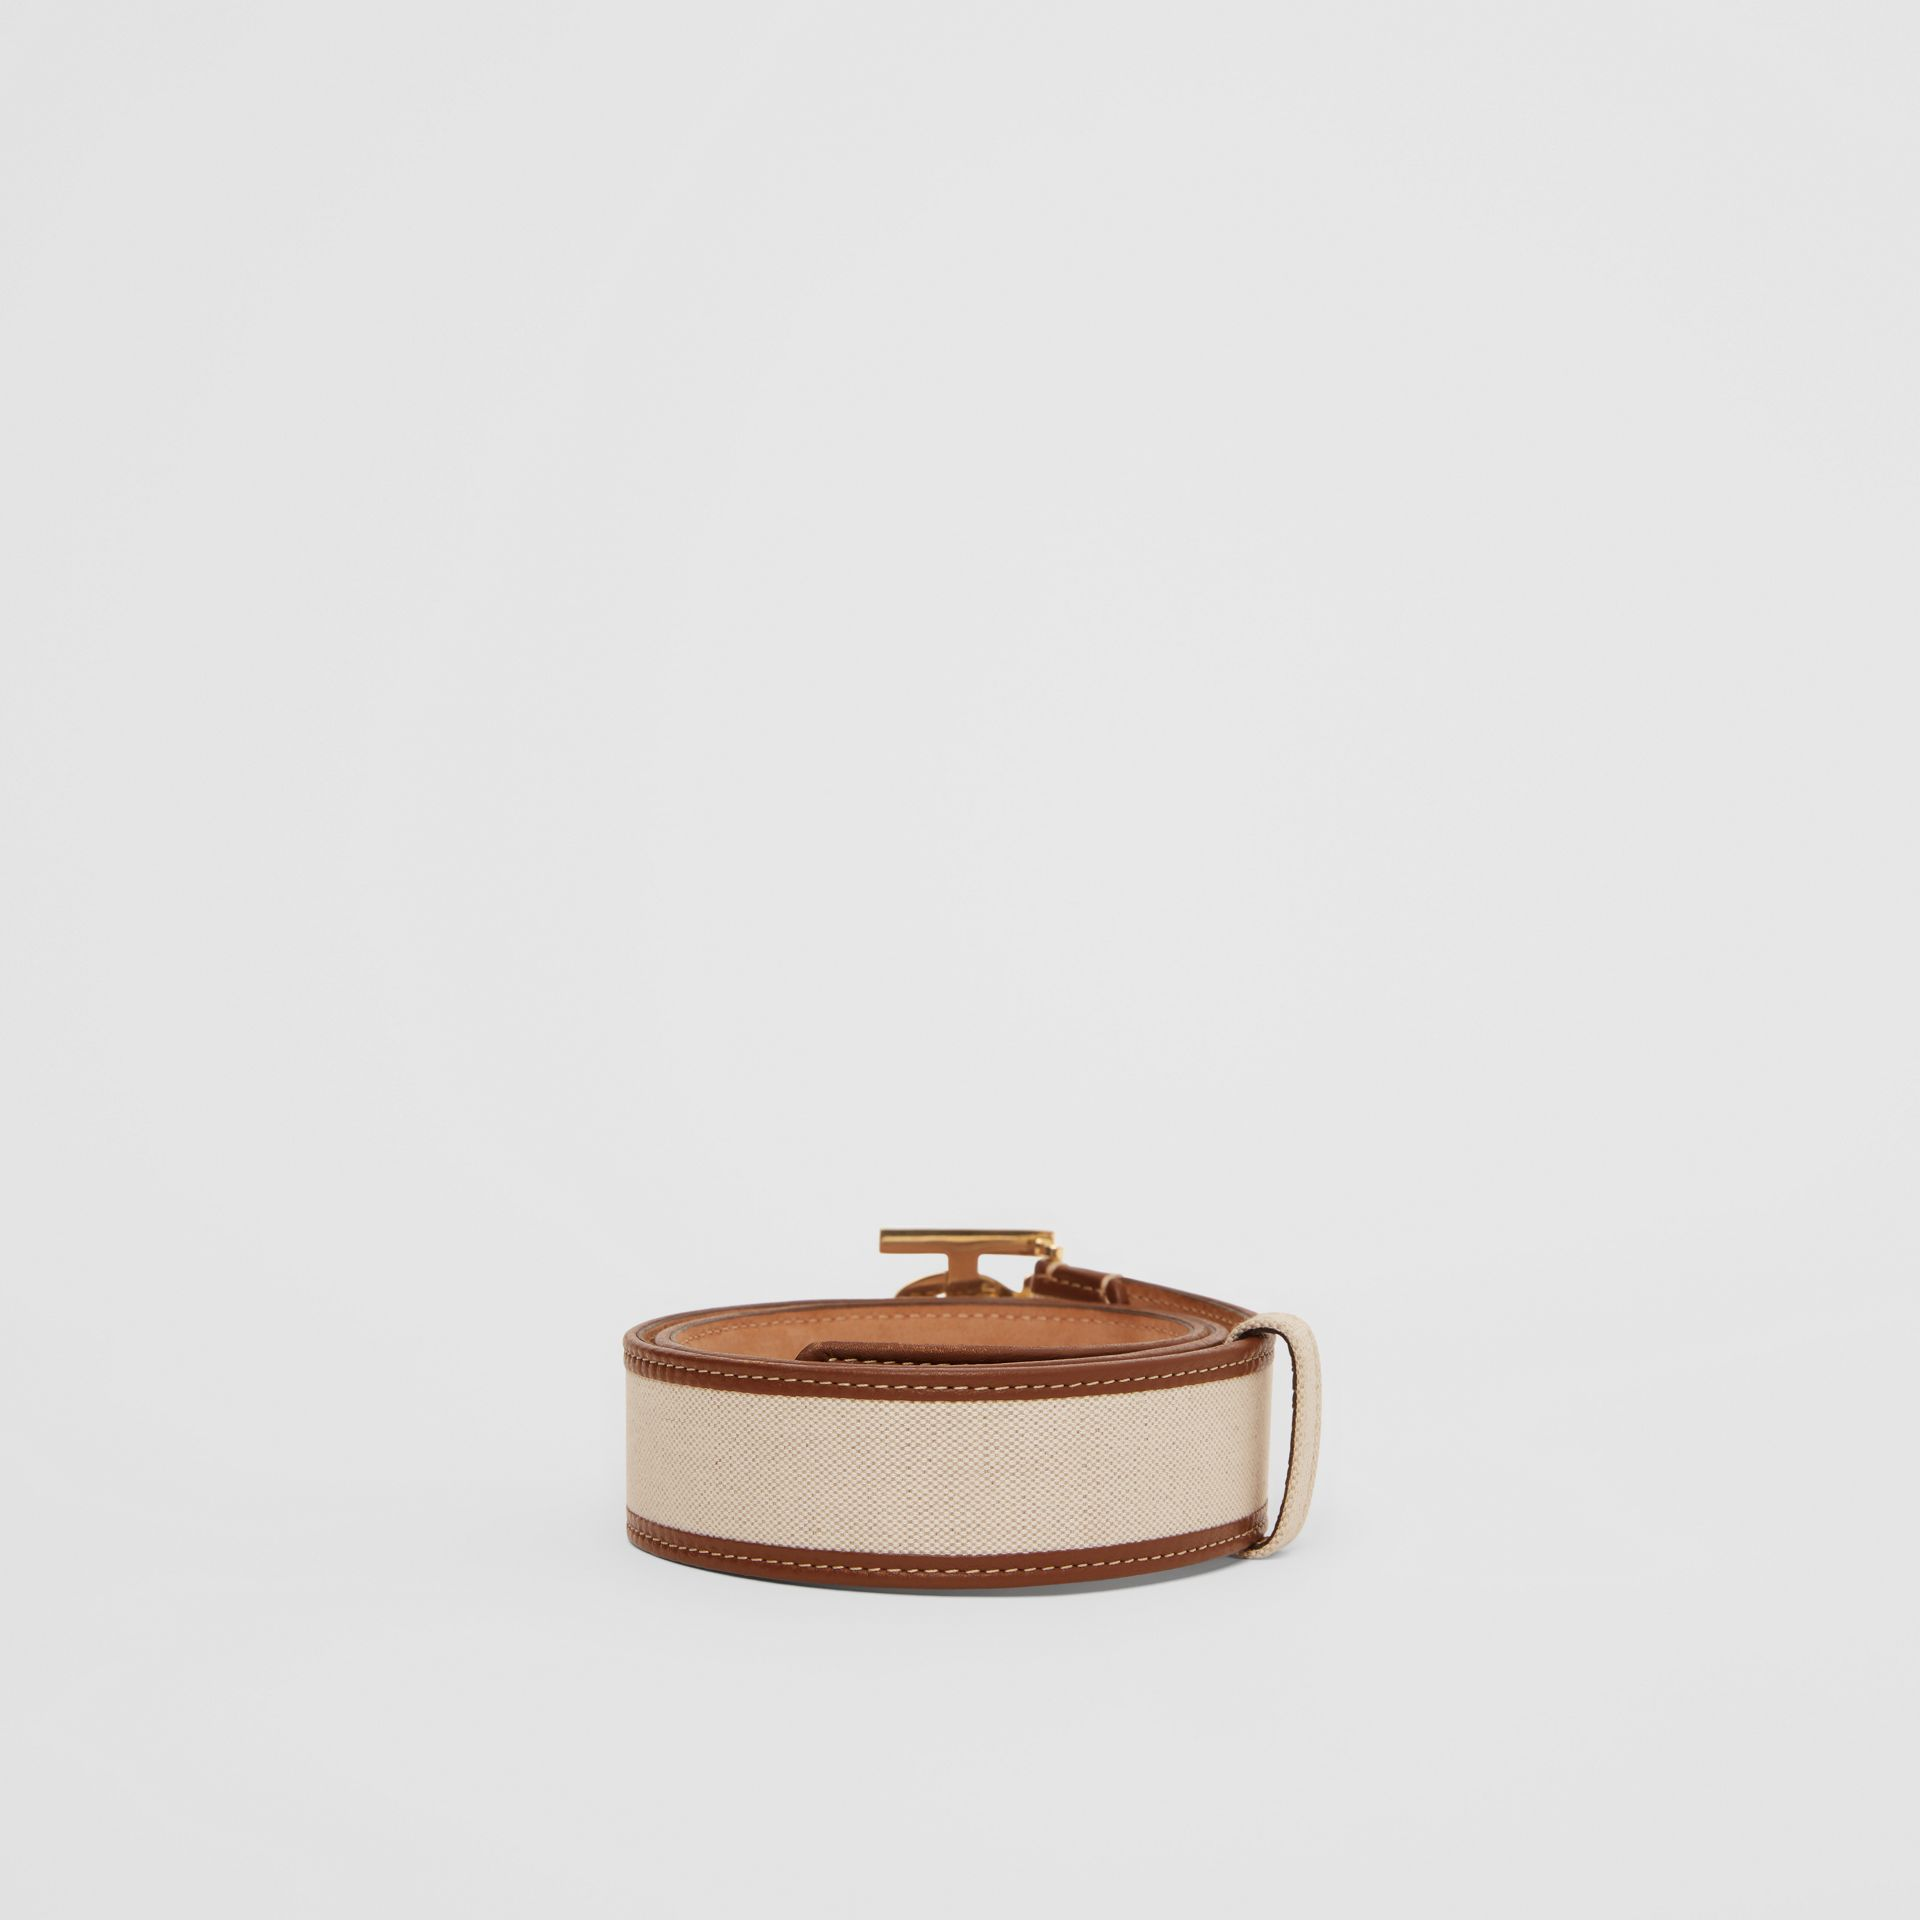 Monogram Motif Canvas and Leather Belt in Natural - Women | Burberry United Kingdom - gallery image 3